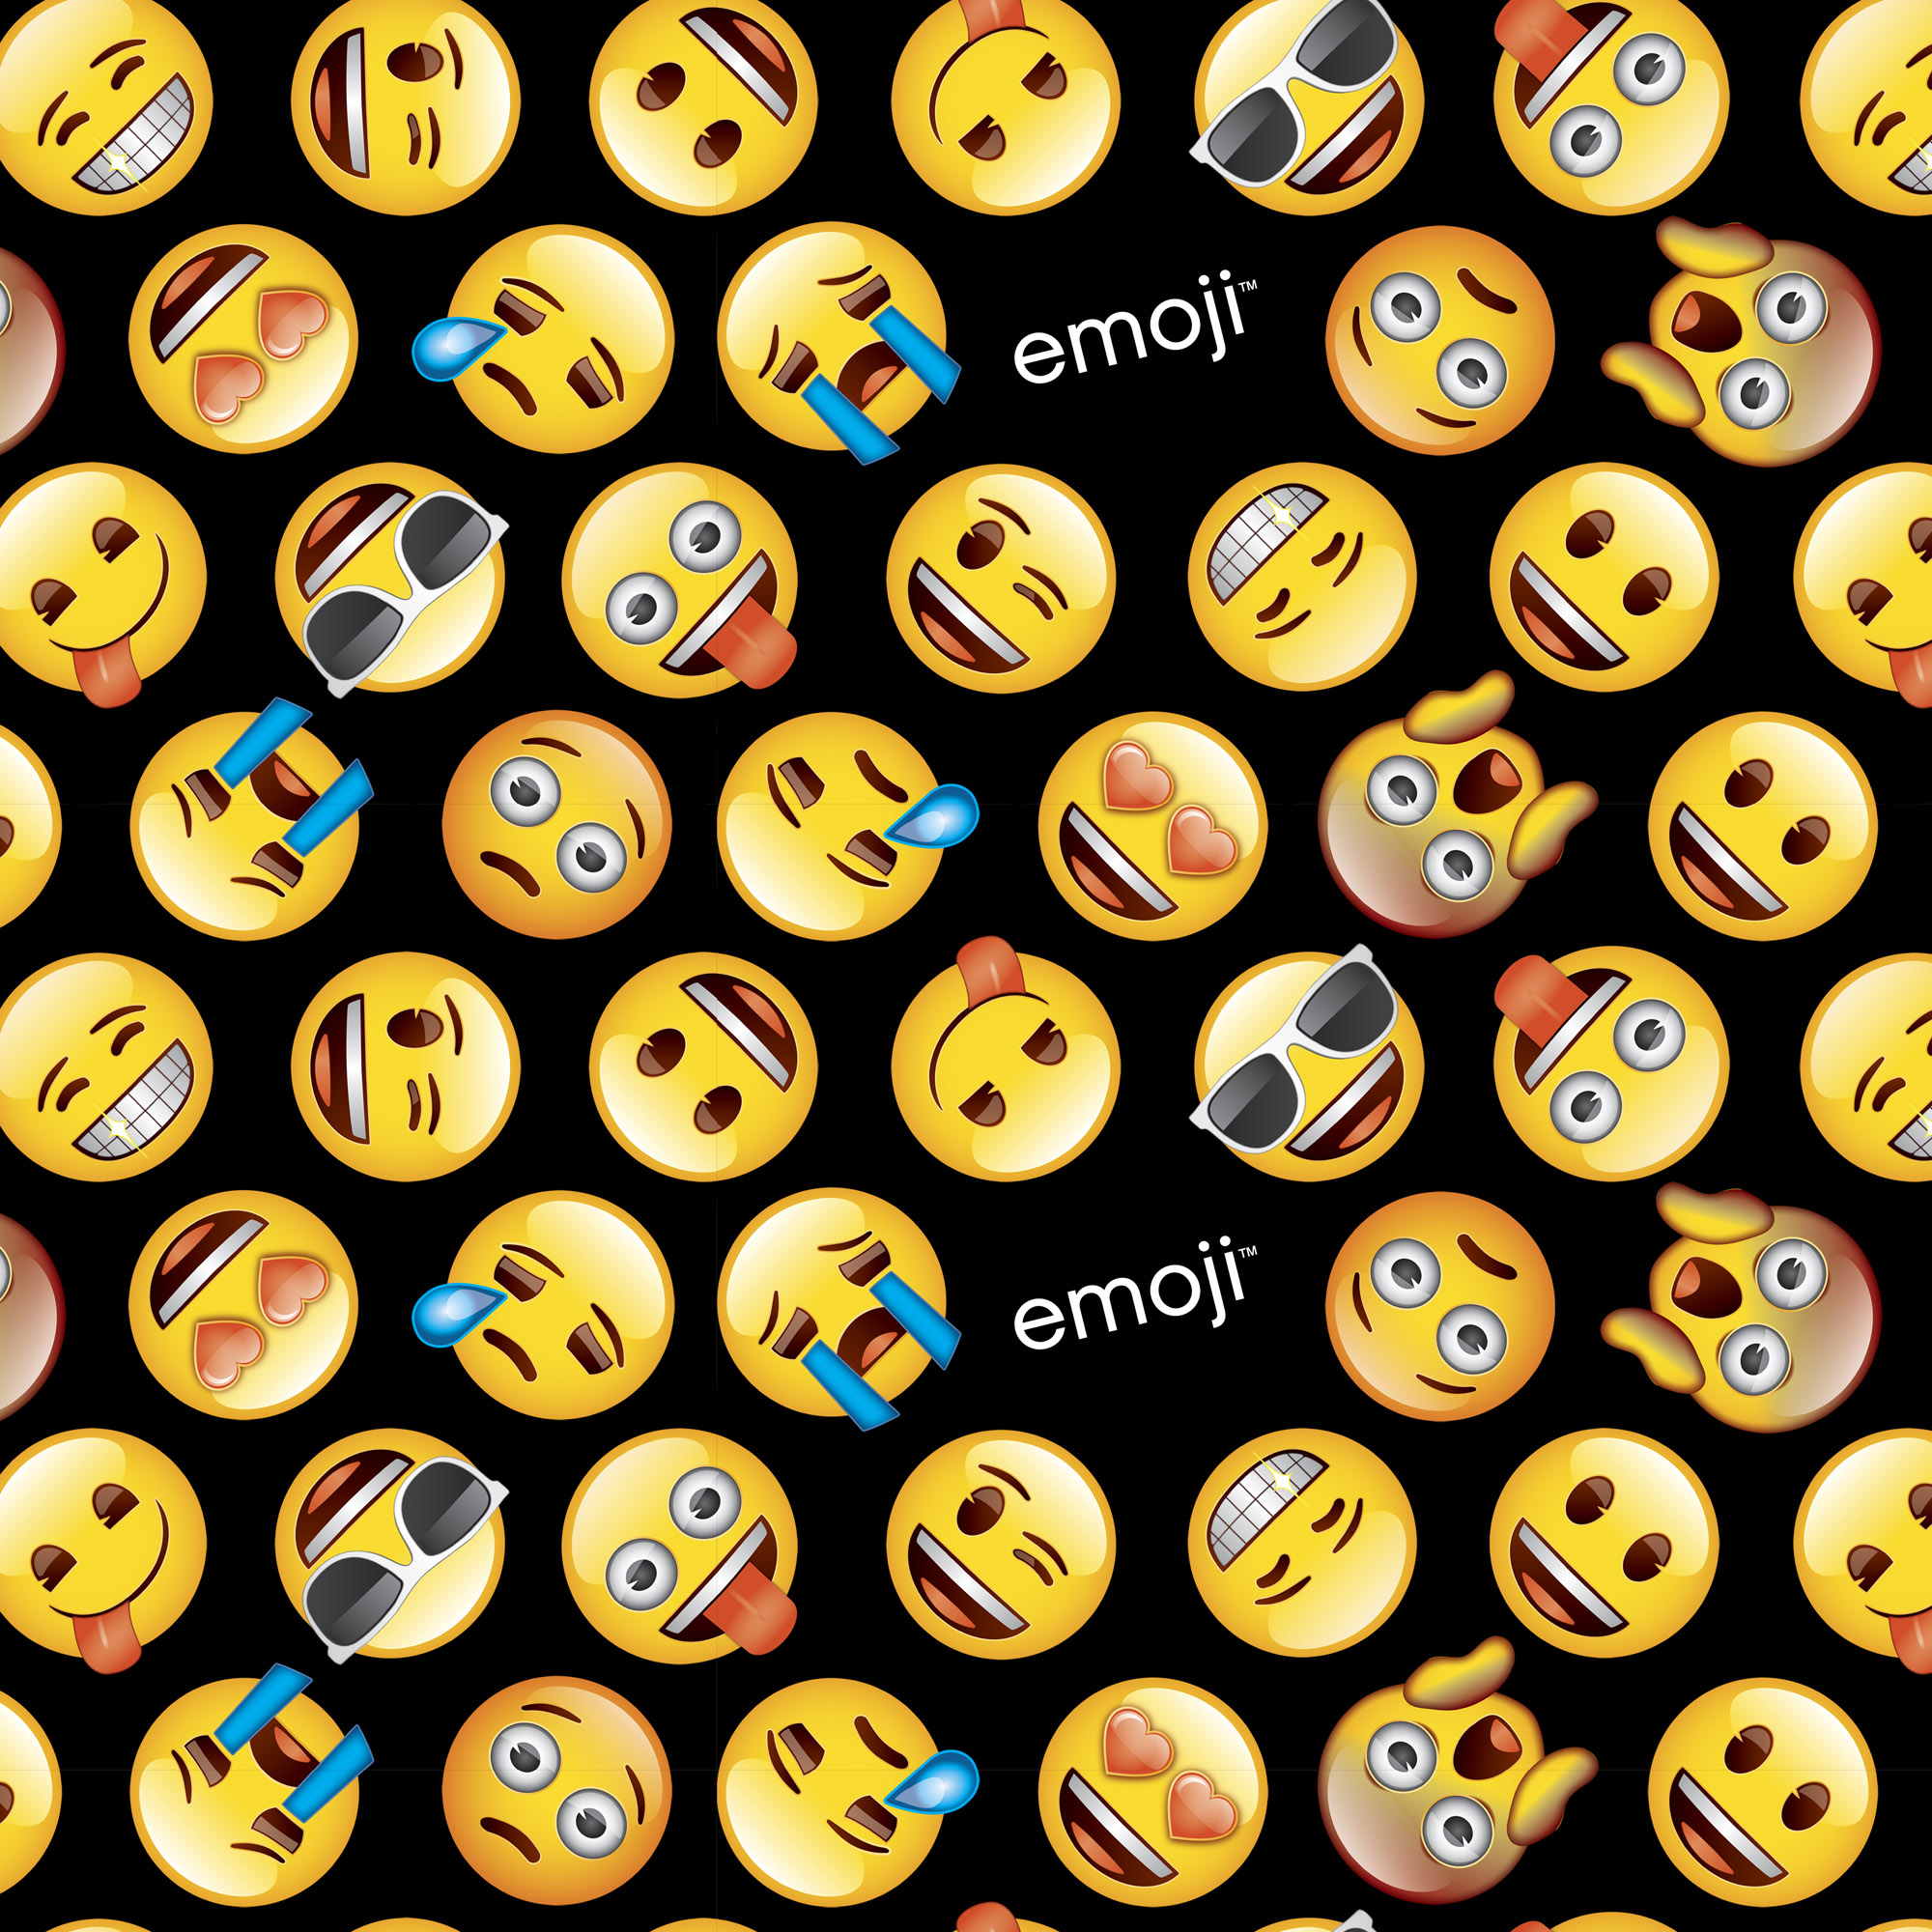 David Textiles Cotton Precut Fabric Classic Emoji 1 Yd X 44 Inches